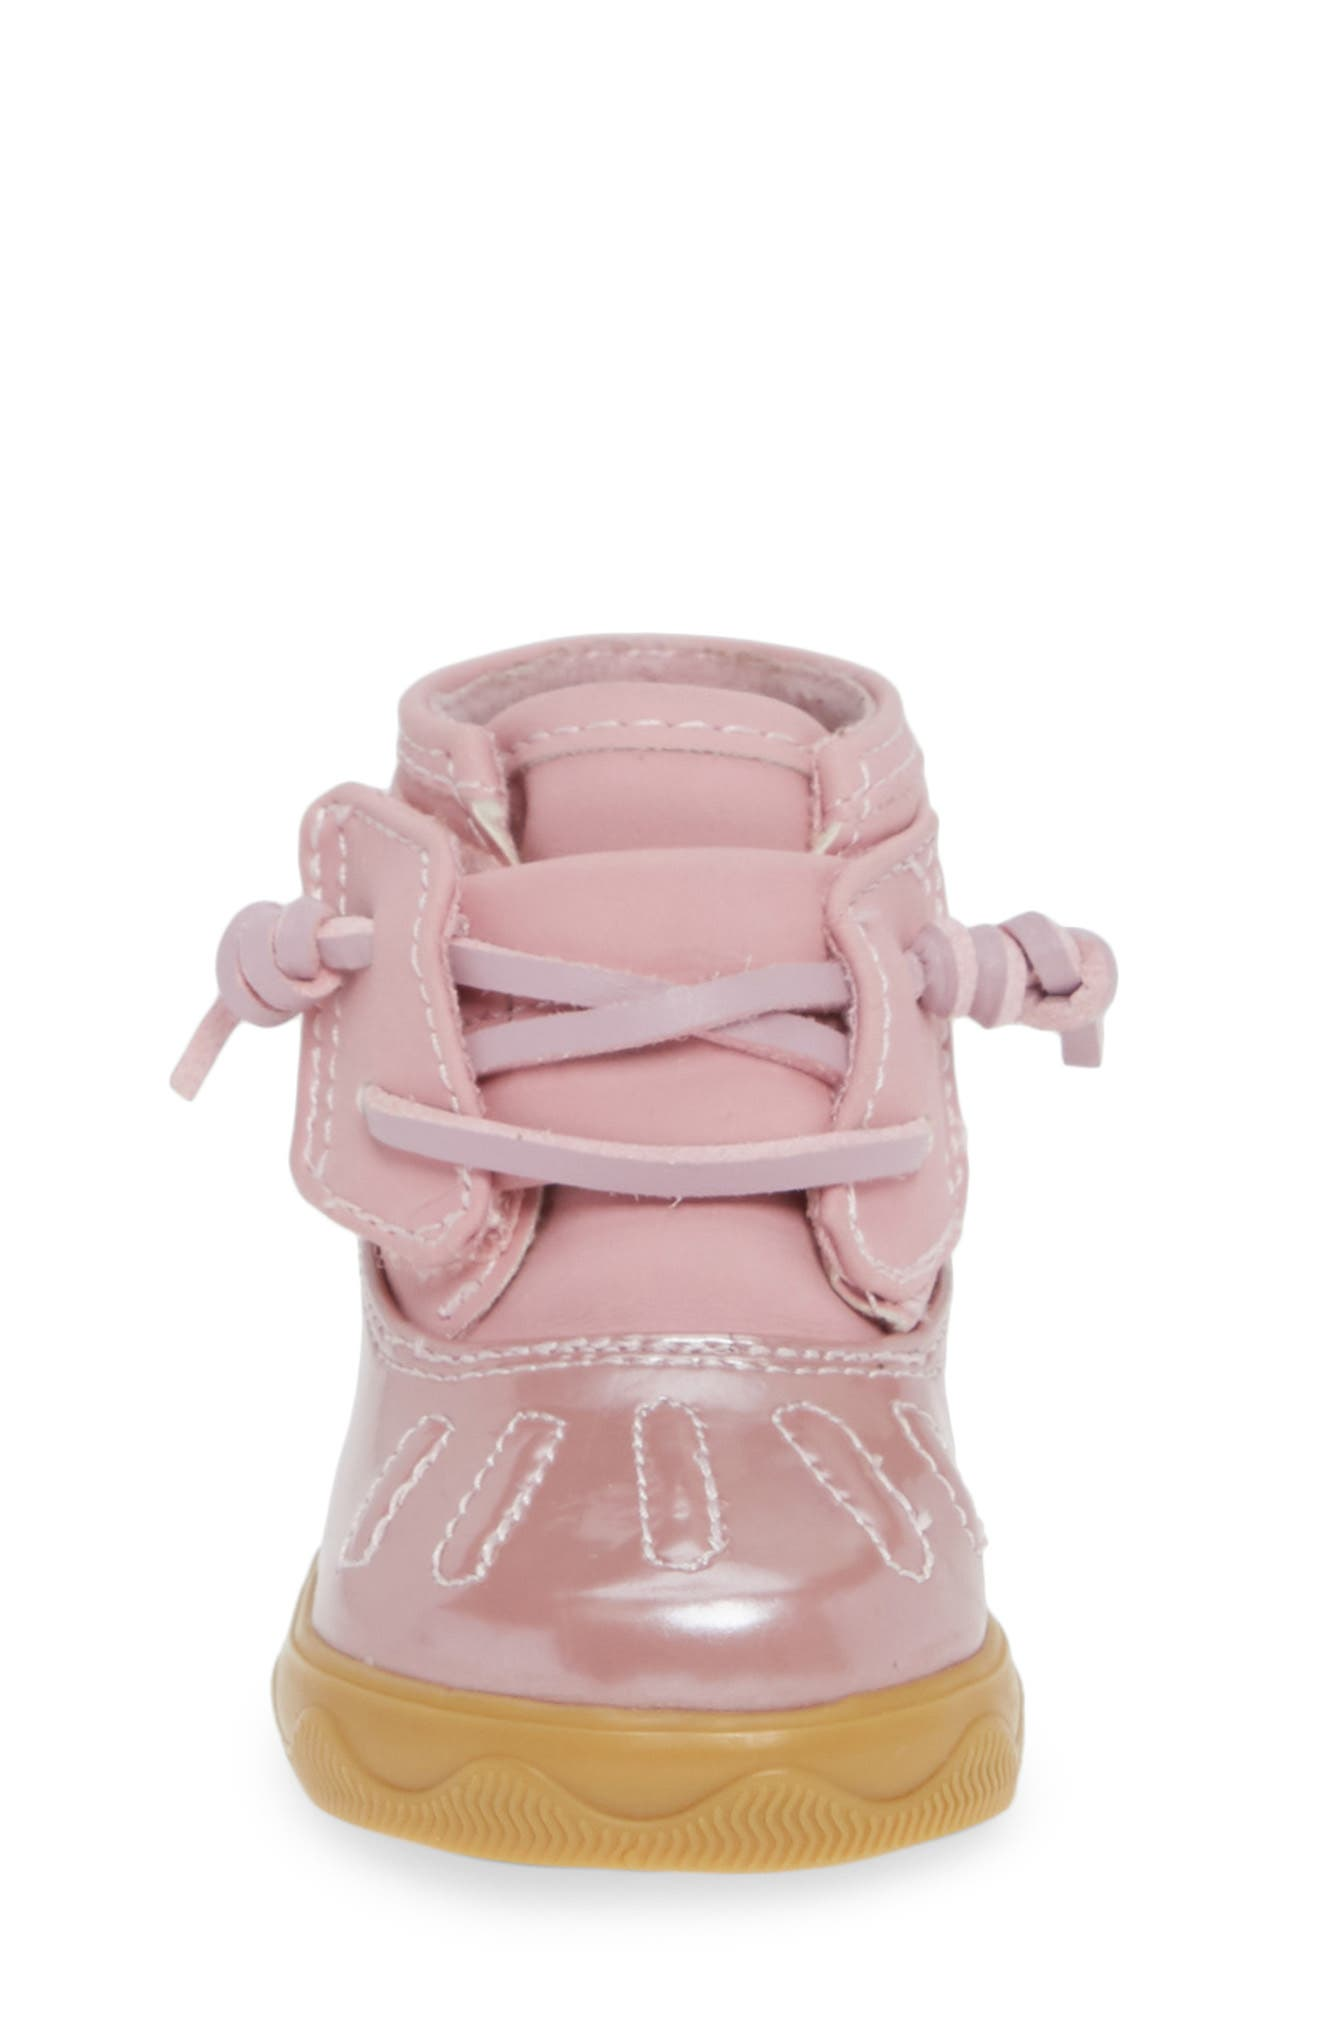 SPERRY KIDS, Sperry Icestorm Crib Duck Bootie, Alternate thumbnail 4, color, 650